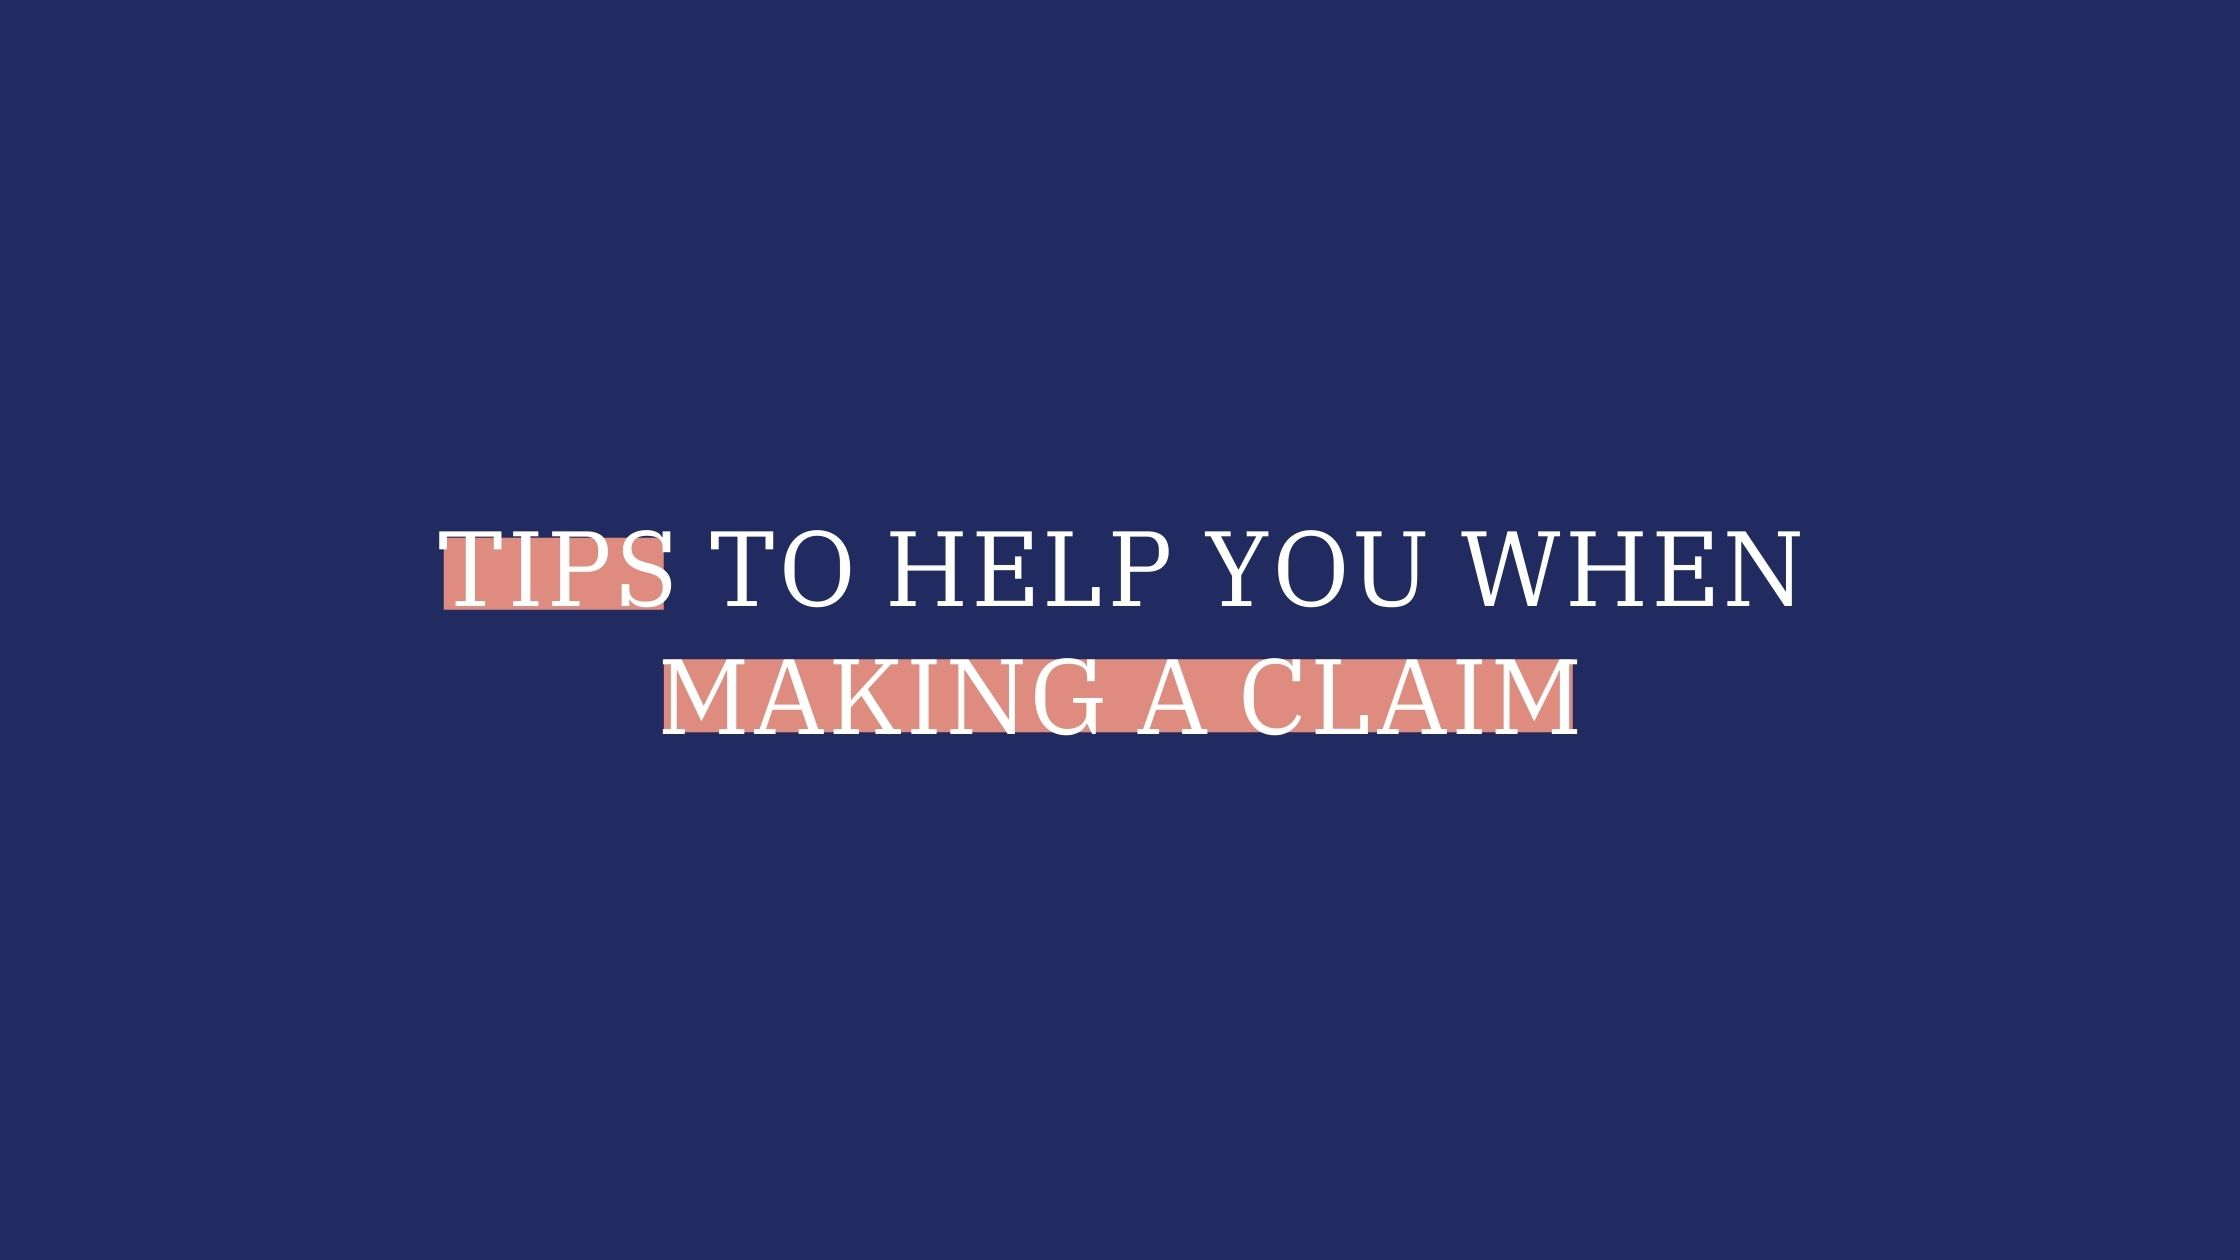 Tips to help you when making a claim